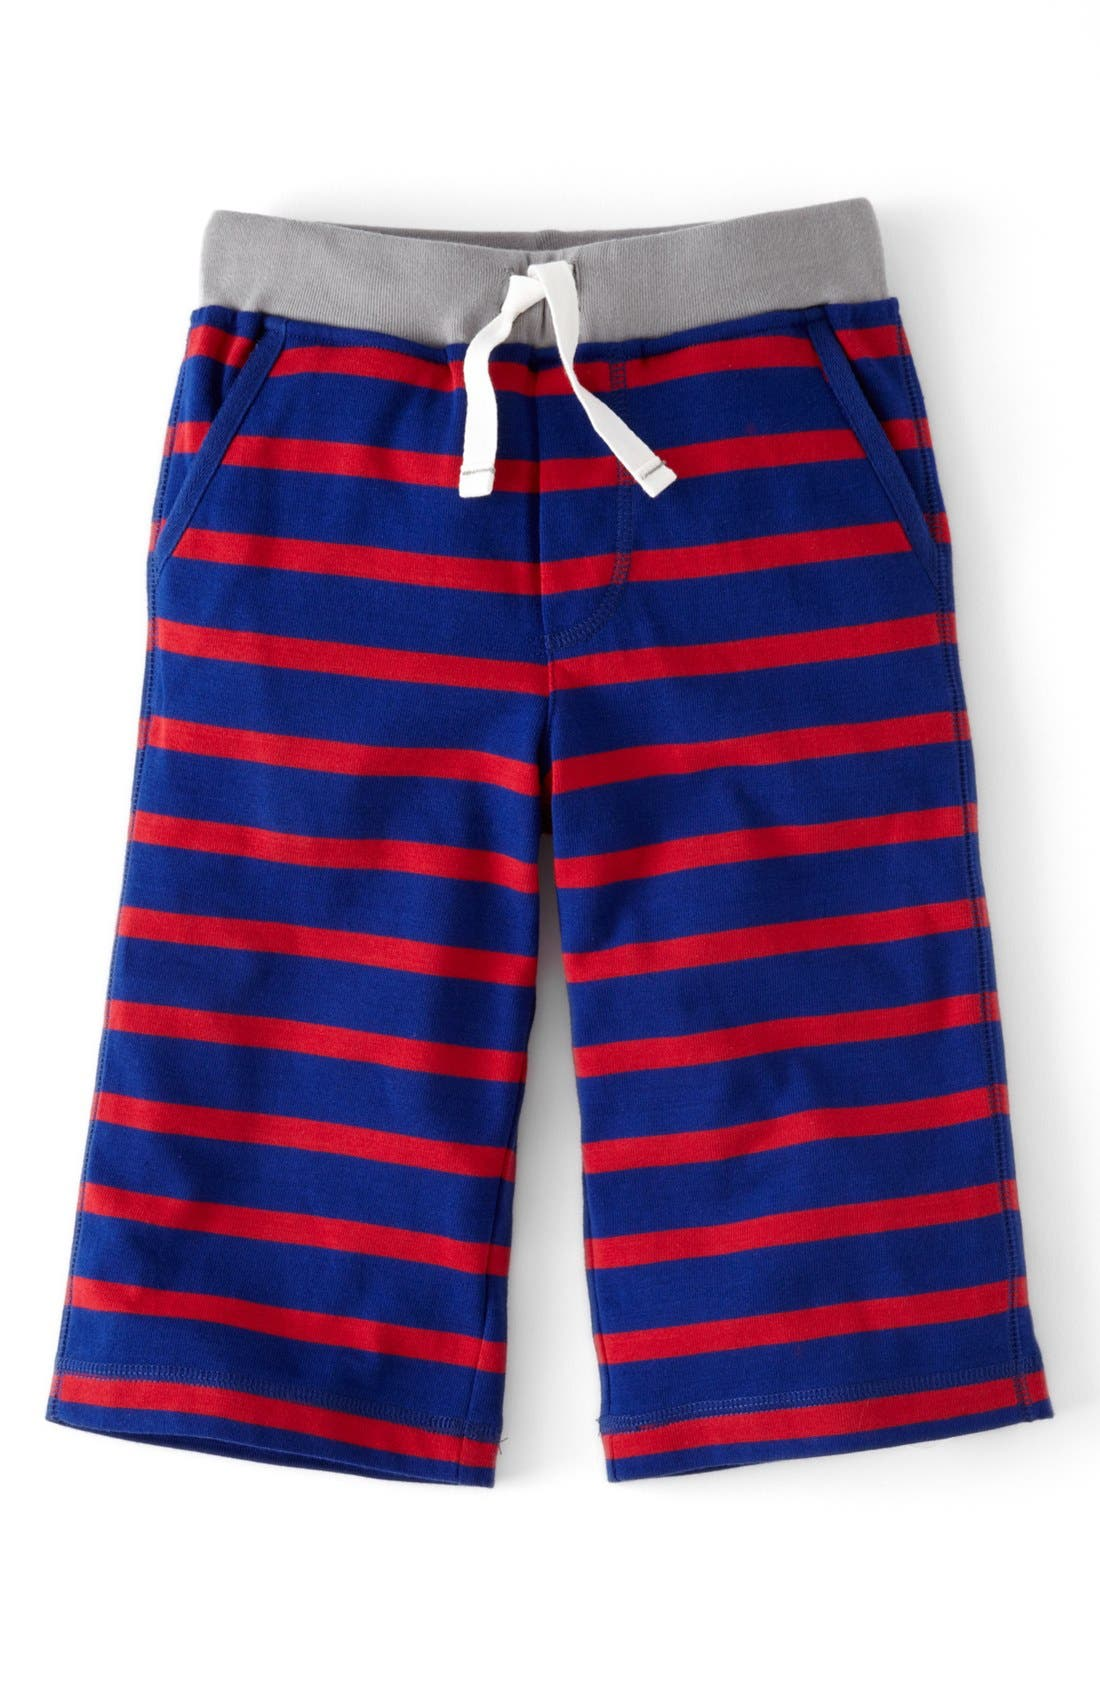 Main Image - Mini Boden 'Baggies' Jersey Shorts (Toddler Boys, Little Boys & Big Boys)